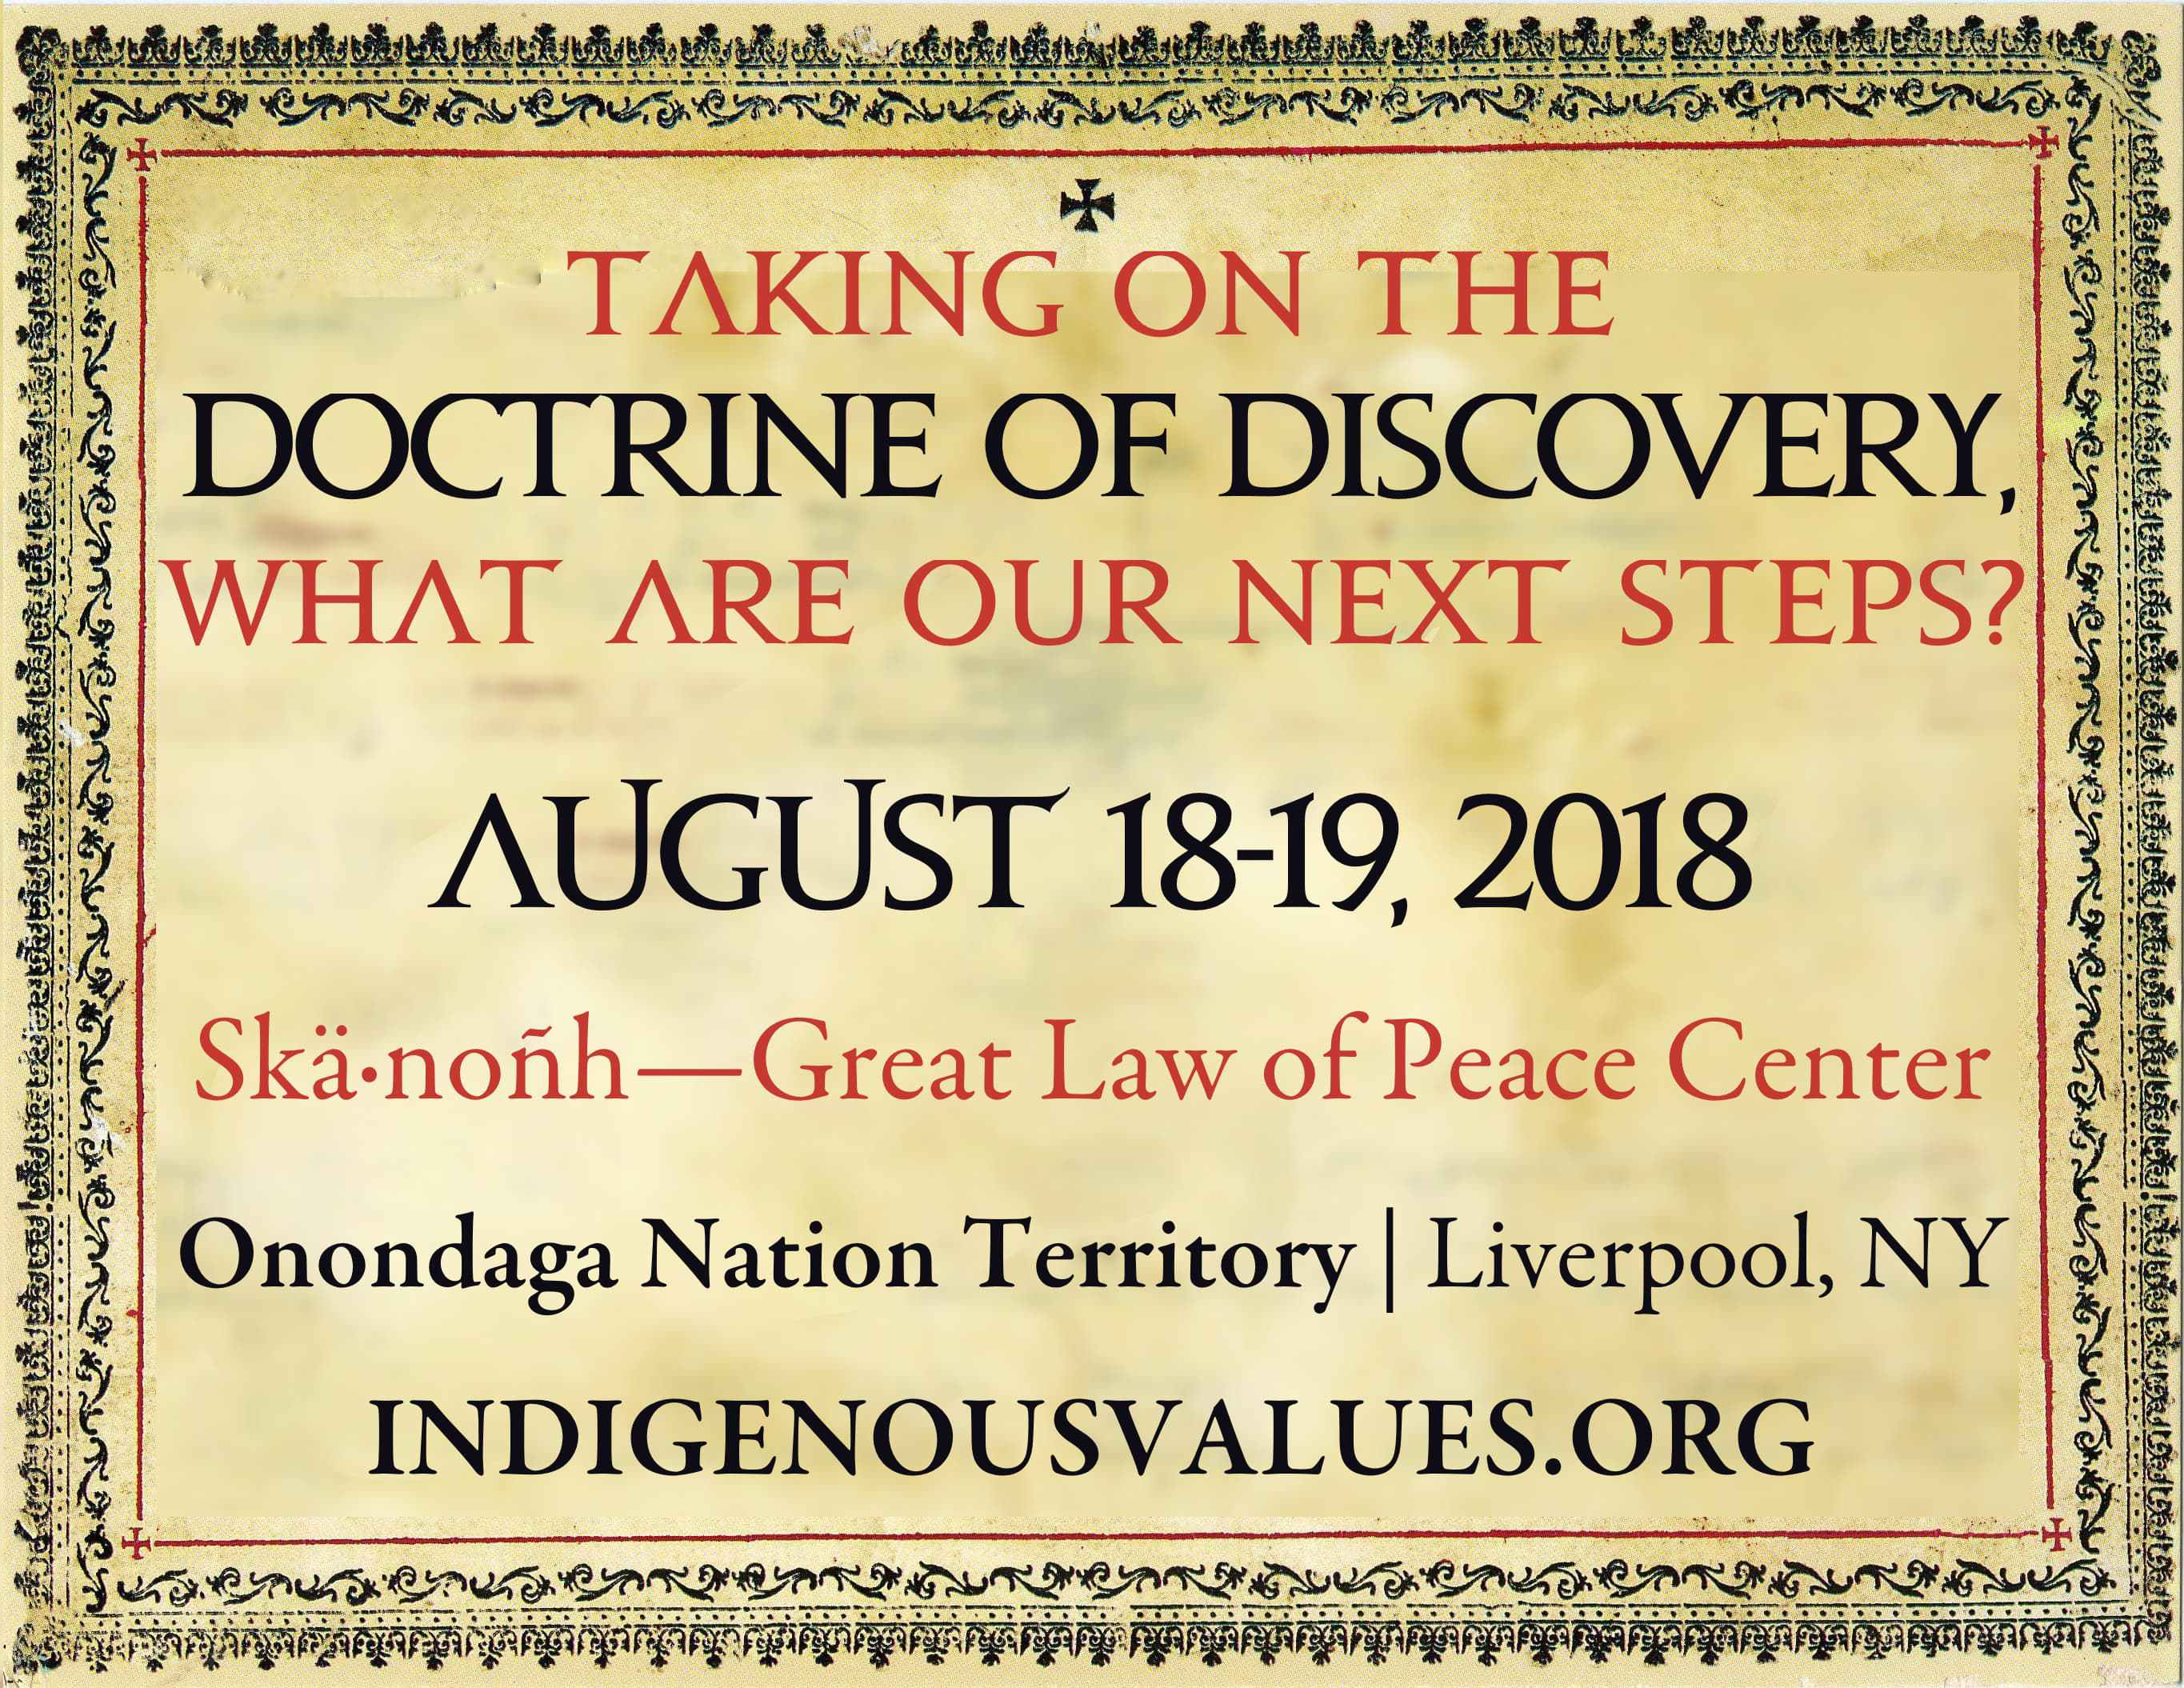 Taking on the Doctrine of Discovery, What are our Next Steps?